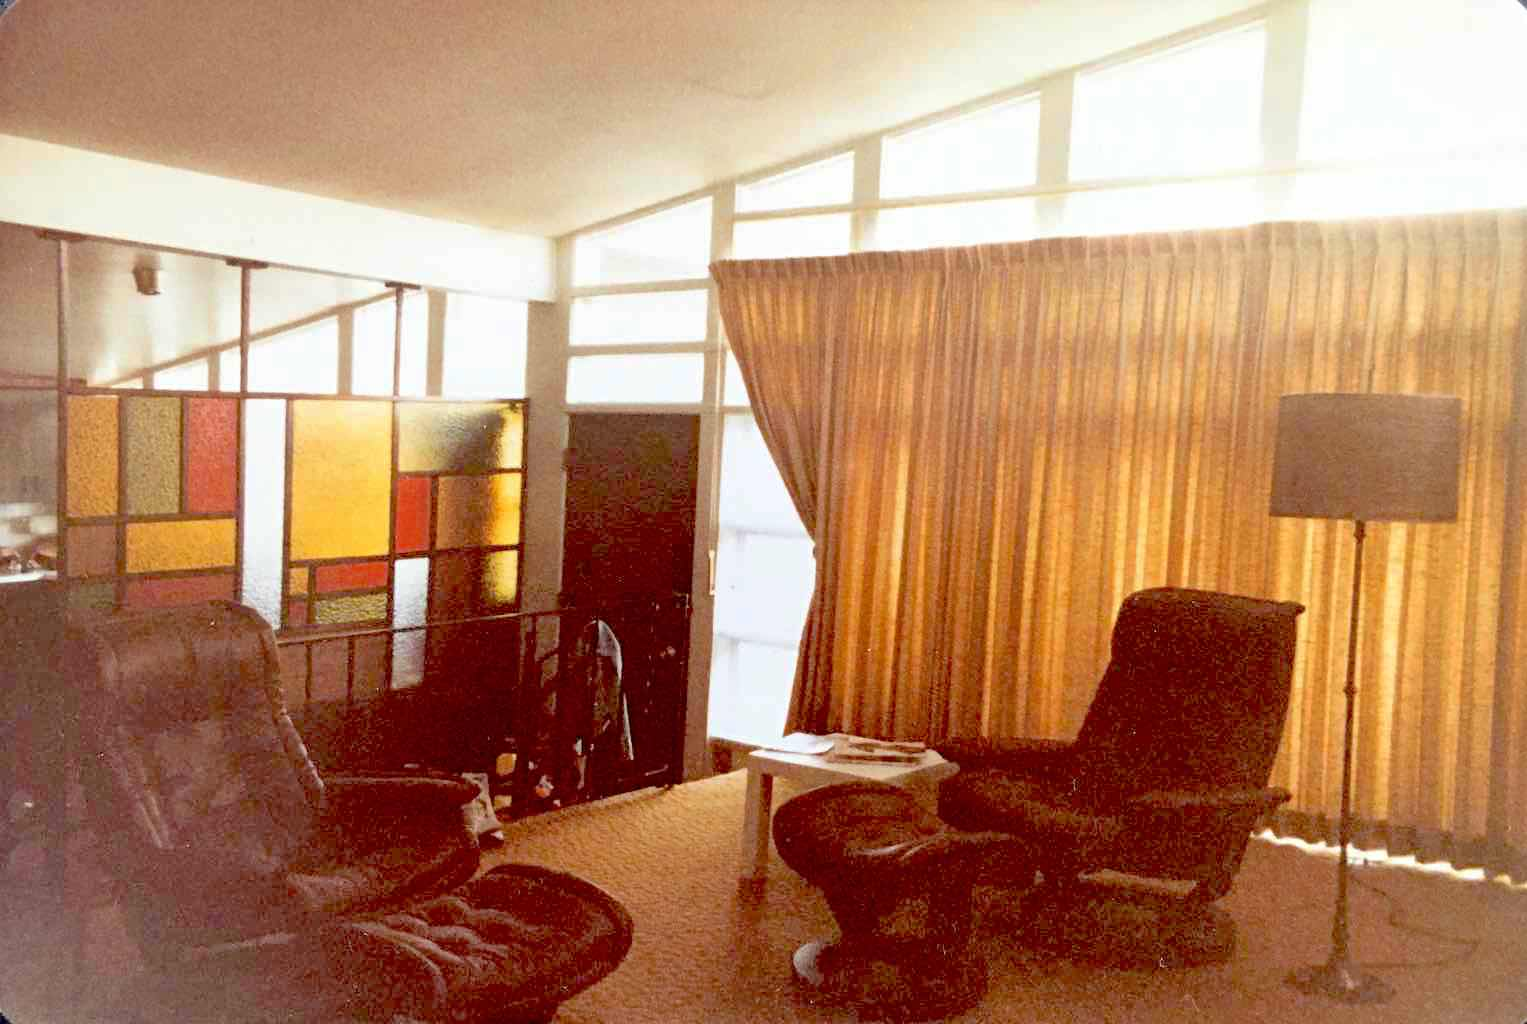 In this image you can see the thick curtains that blocked much of the light from entering the living room.